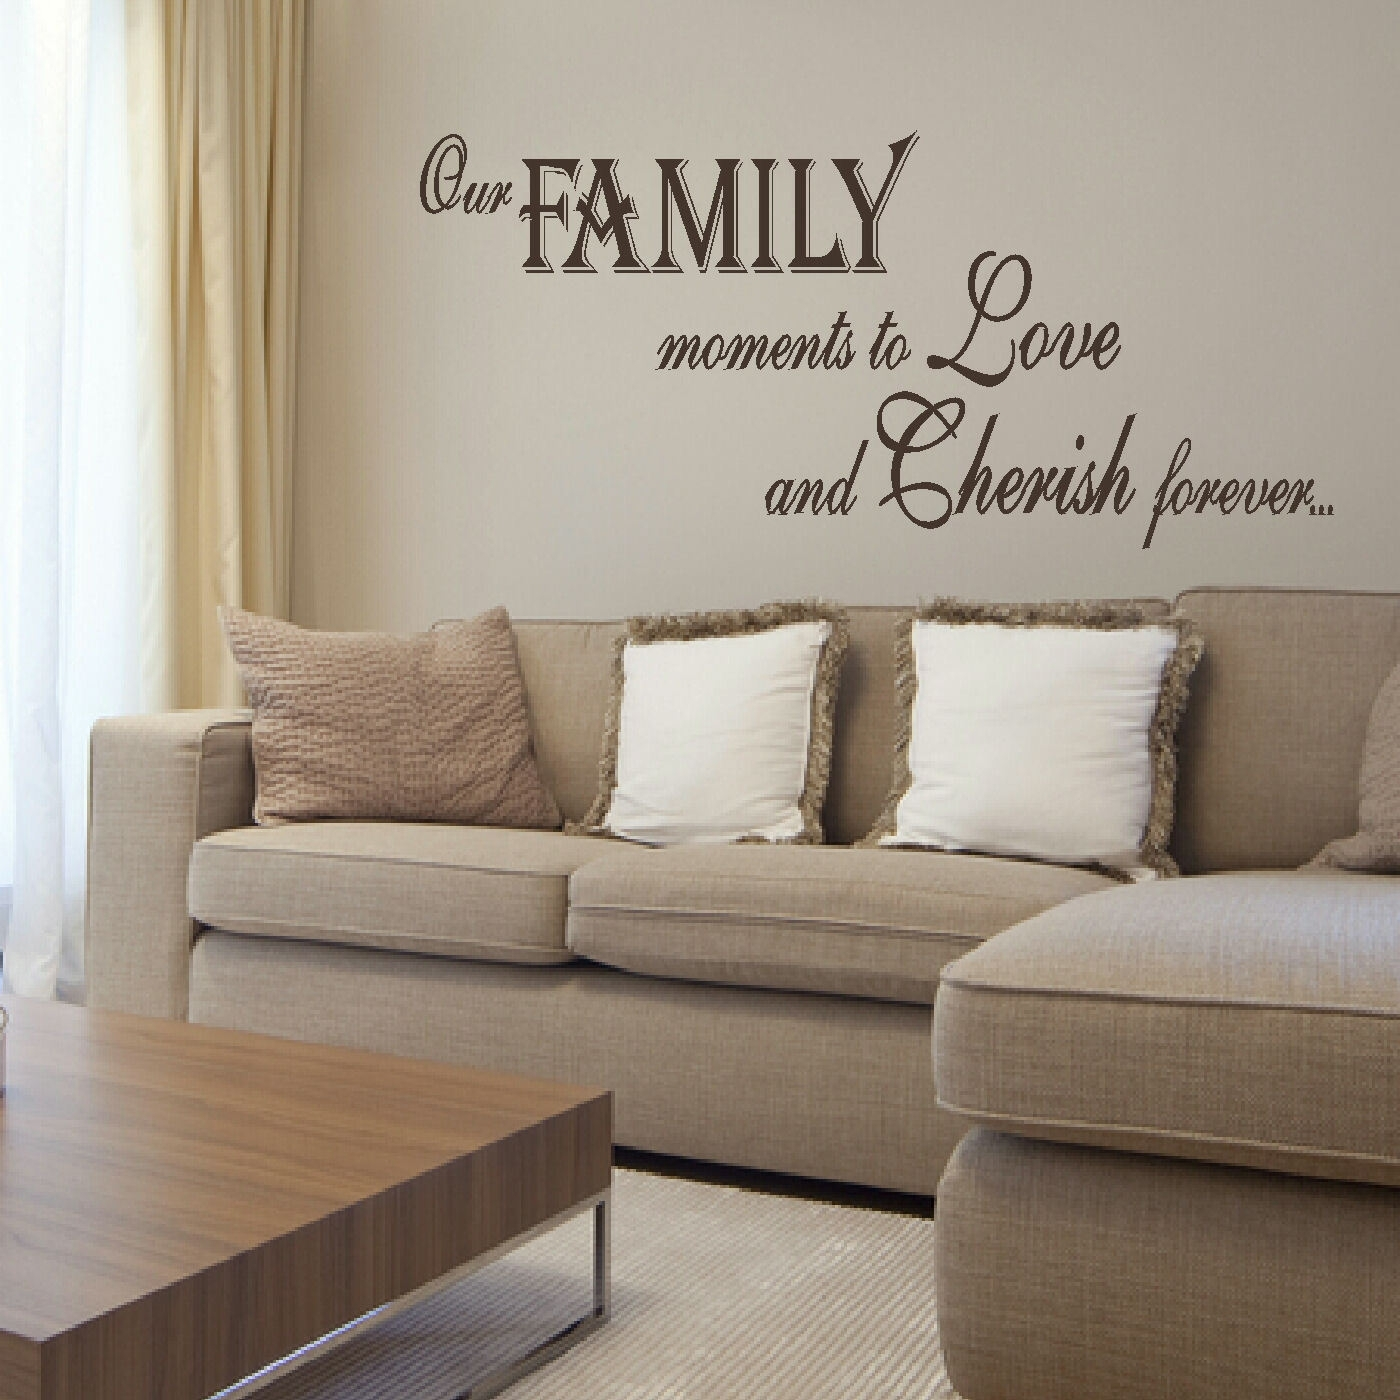 Large Bedroom Quote Family Love Giant Wall Art Sticker Transfer Throughout Most Recent Giant Wall Art (Gallery 3 of 20)